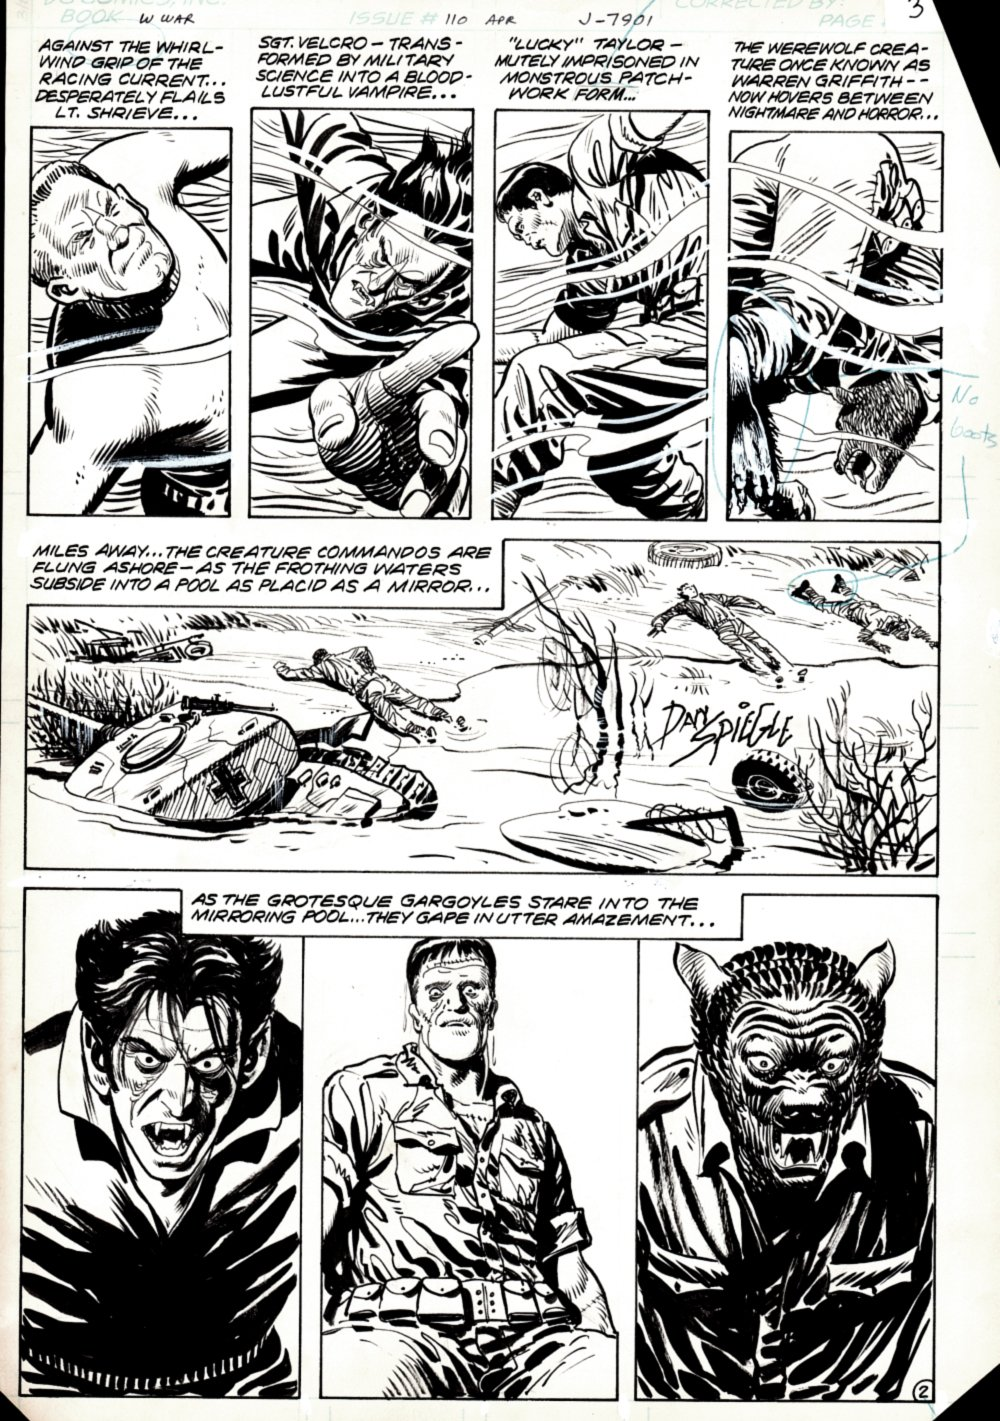 Weird War Tales #110 p 2 (SOLD LIVE ON 'DUELING DEALERS OF COMIC ART' EPISODE #33 PODCAST ON 8-25-2021(RE-WATCH THIS FUNNY ART SELLING SHOW HERE)